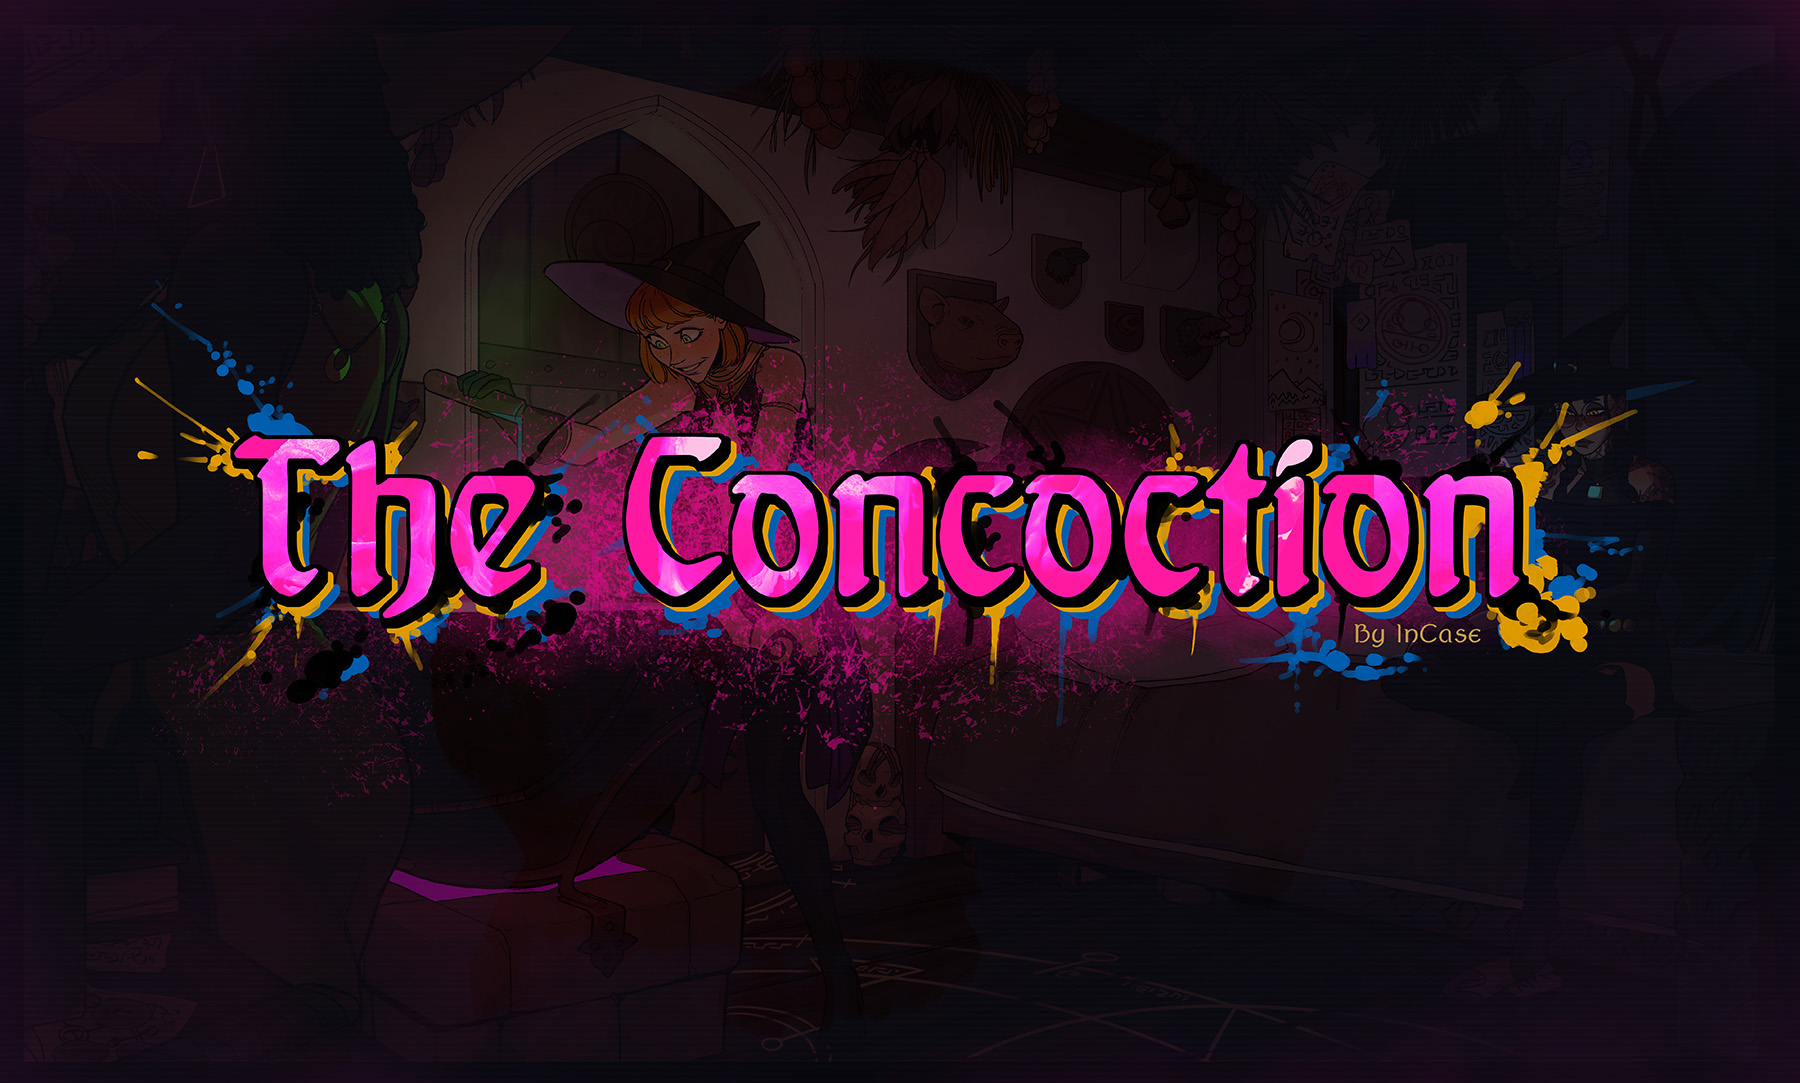 The Concoction title page